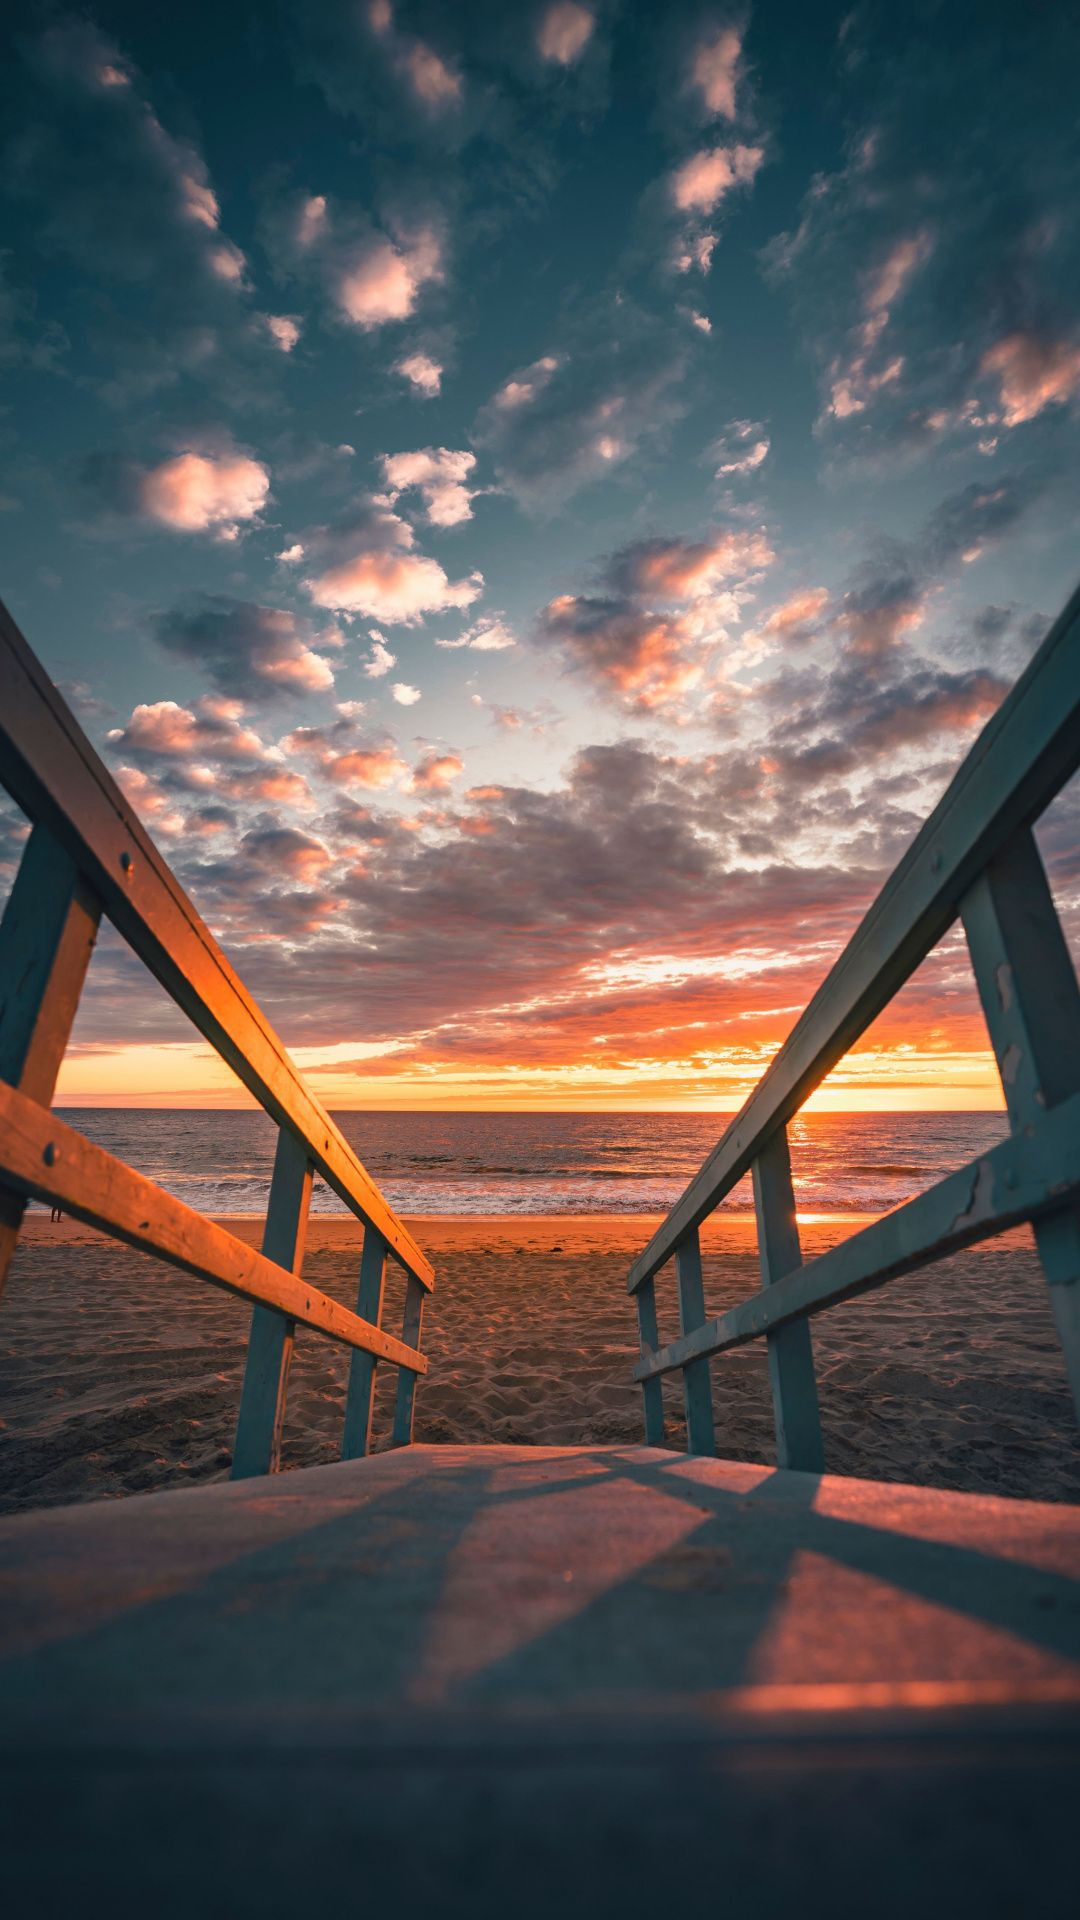 Sunset Beach Sand Fence 1080x1920 Wallpaper Sunset Nature Photoshop Actions For Photographers Nature